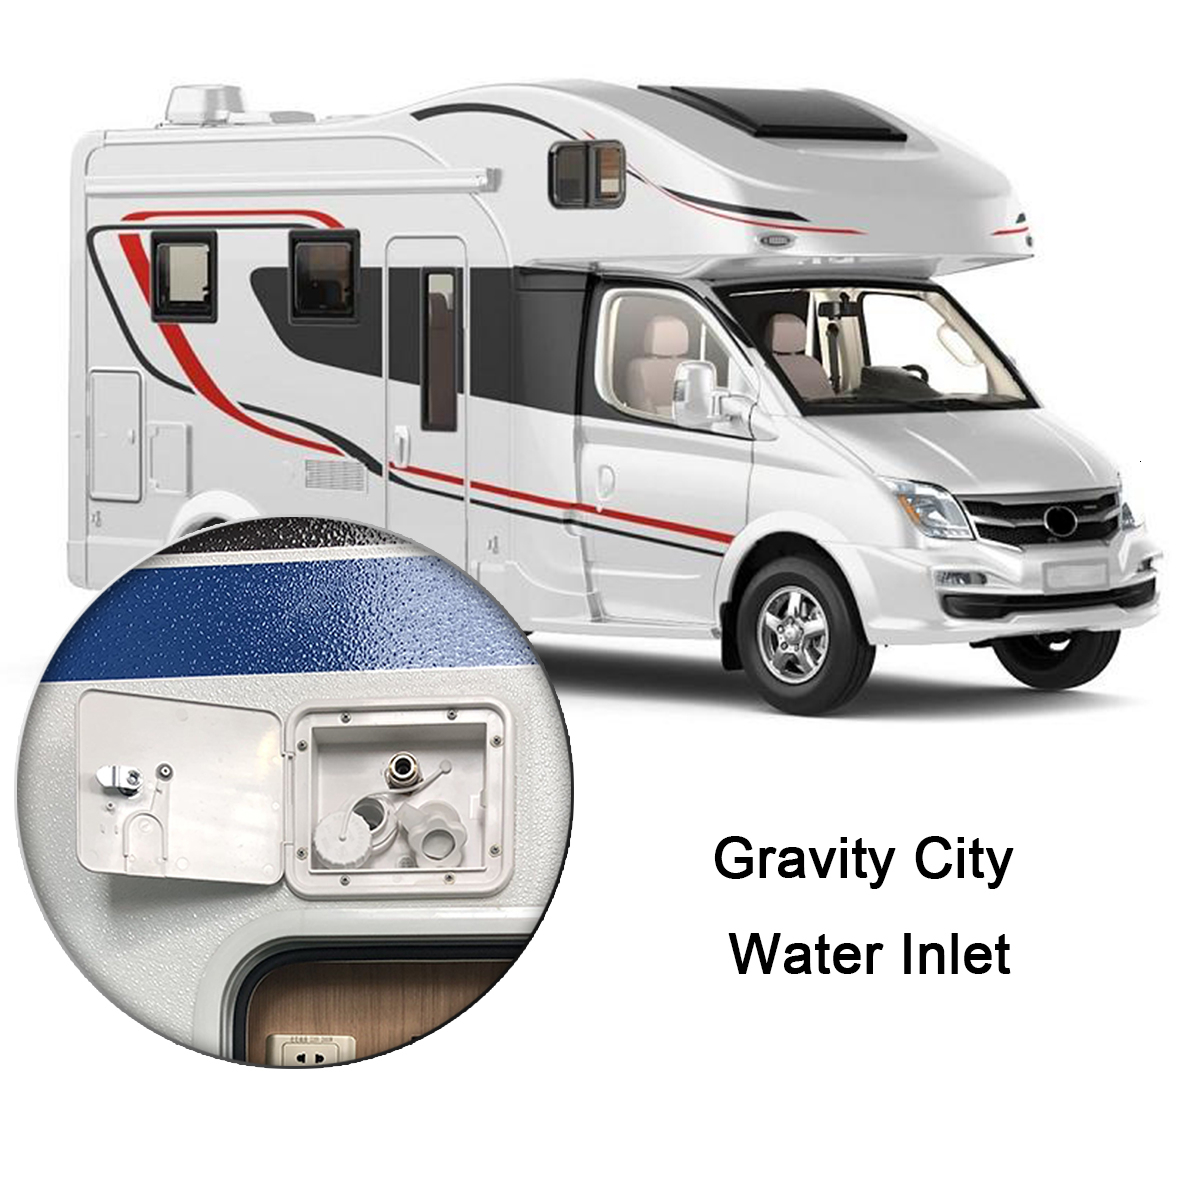 White Gravity City Water Inlet Integrated Fill Dish Hatch Lock For RV Trailer Car(China)